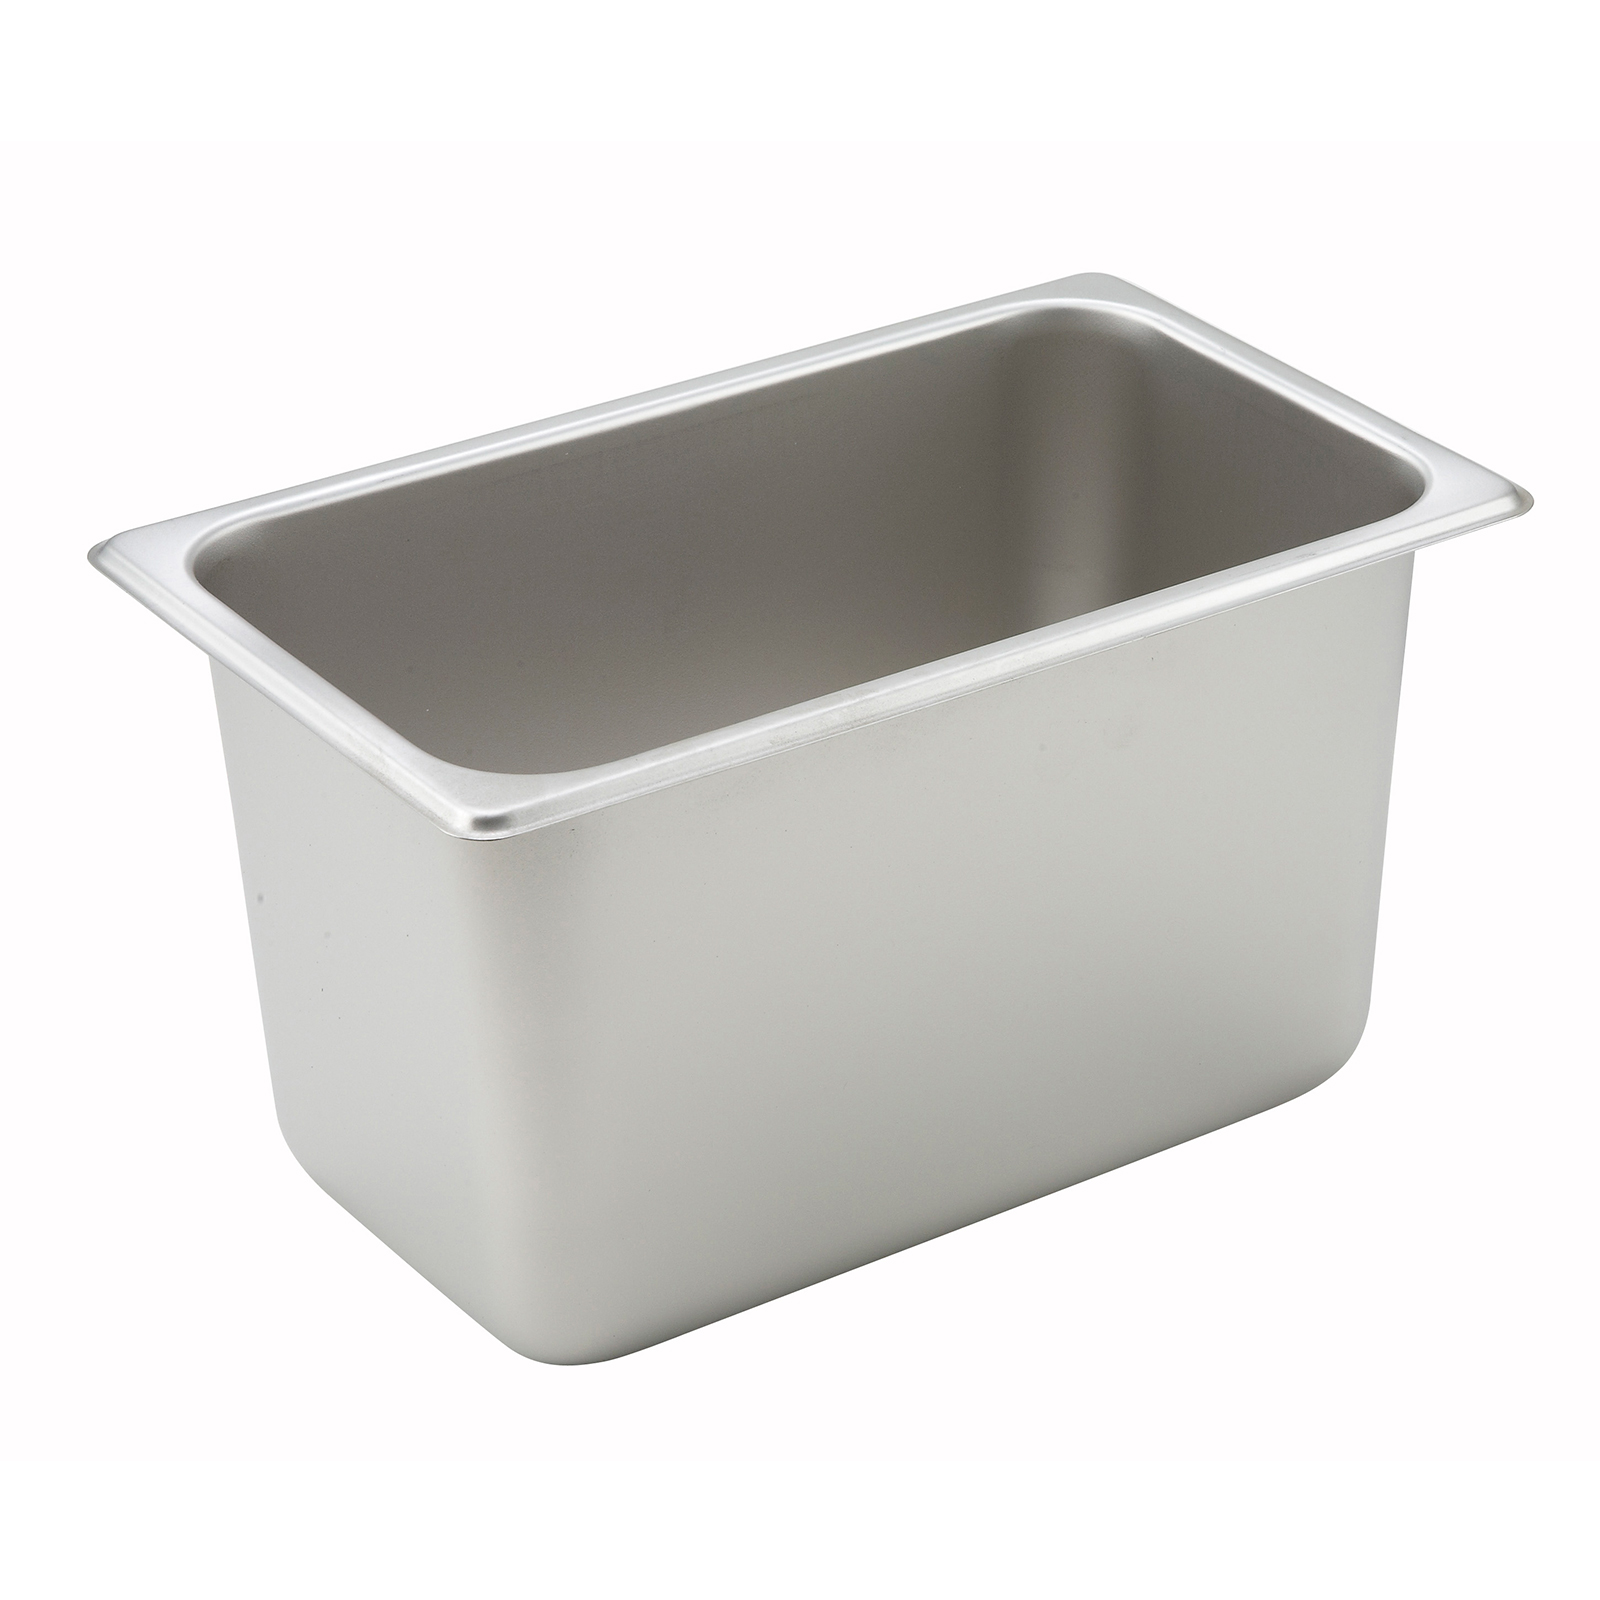 Winco SPQ6 steam table pan, stainless steel